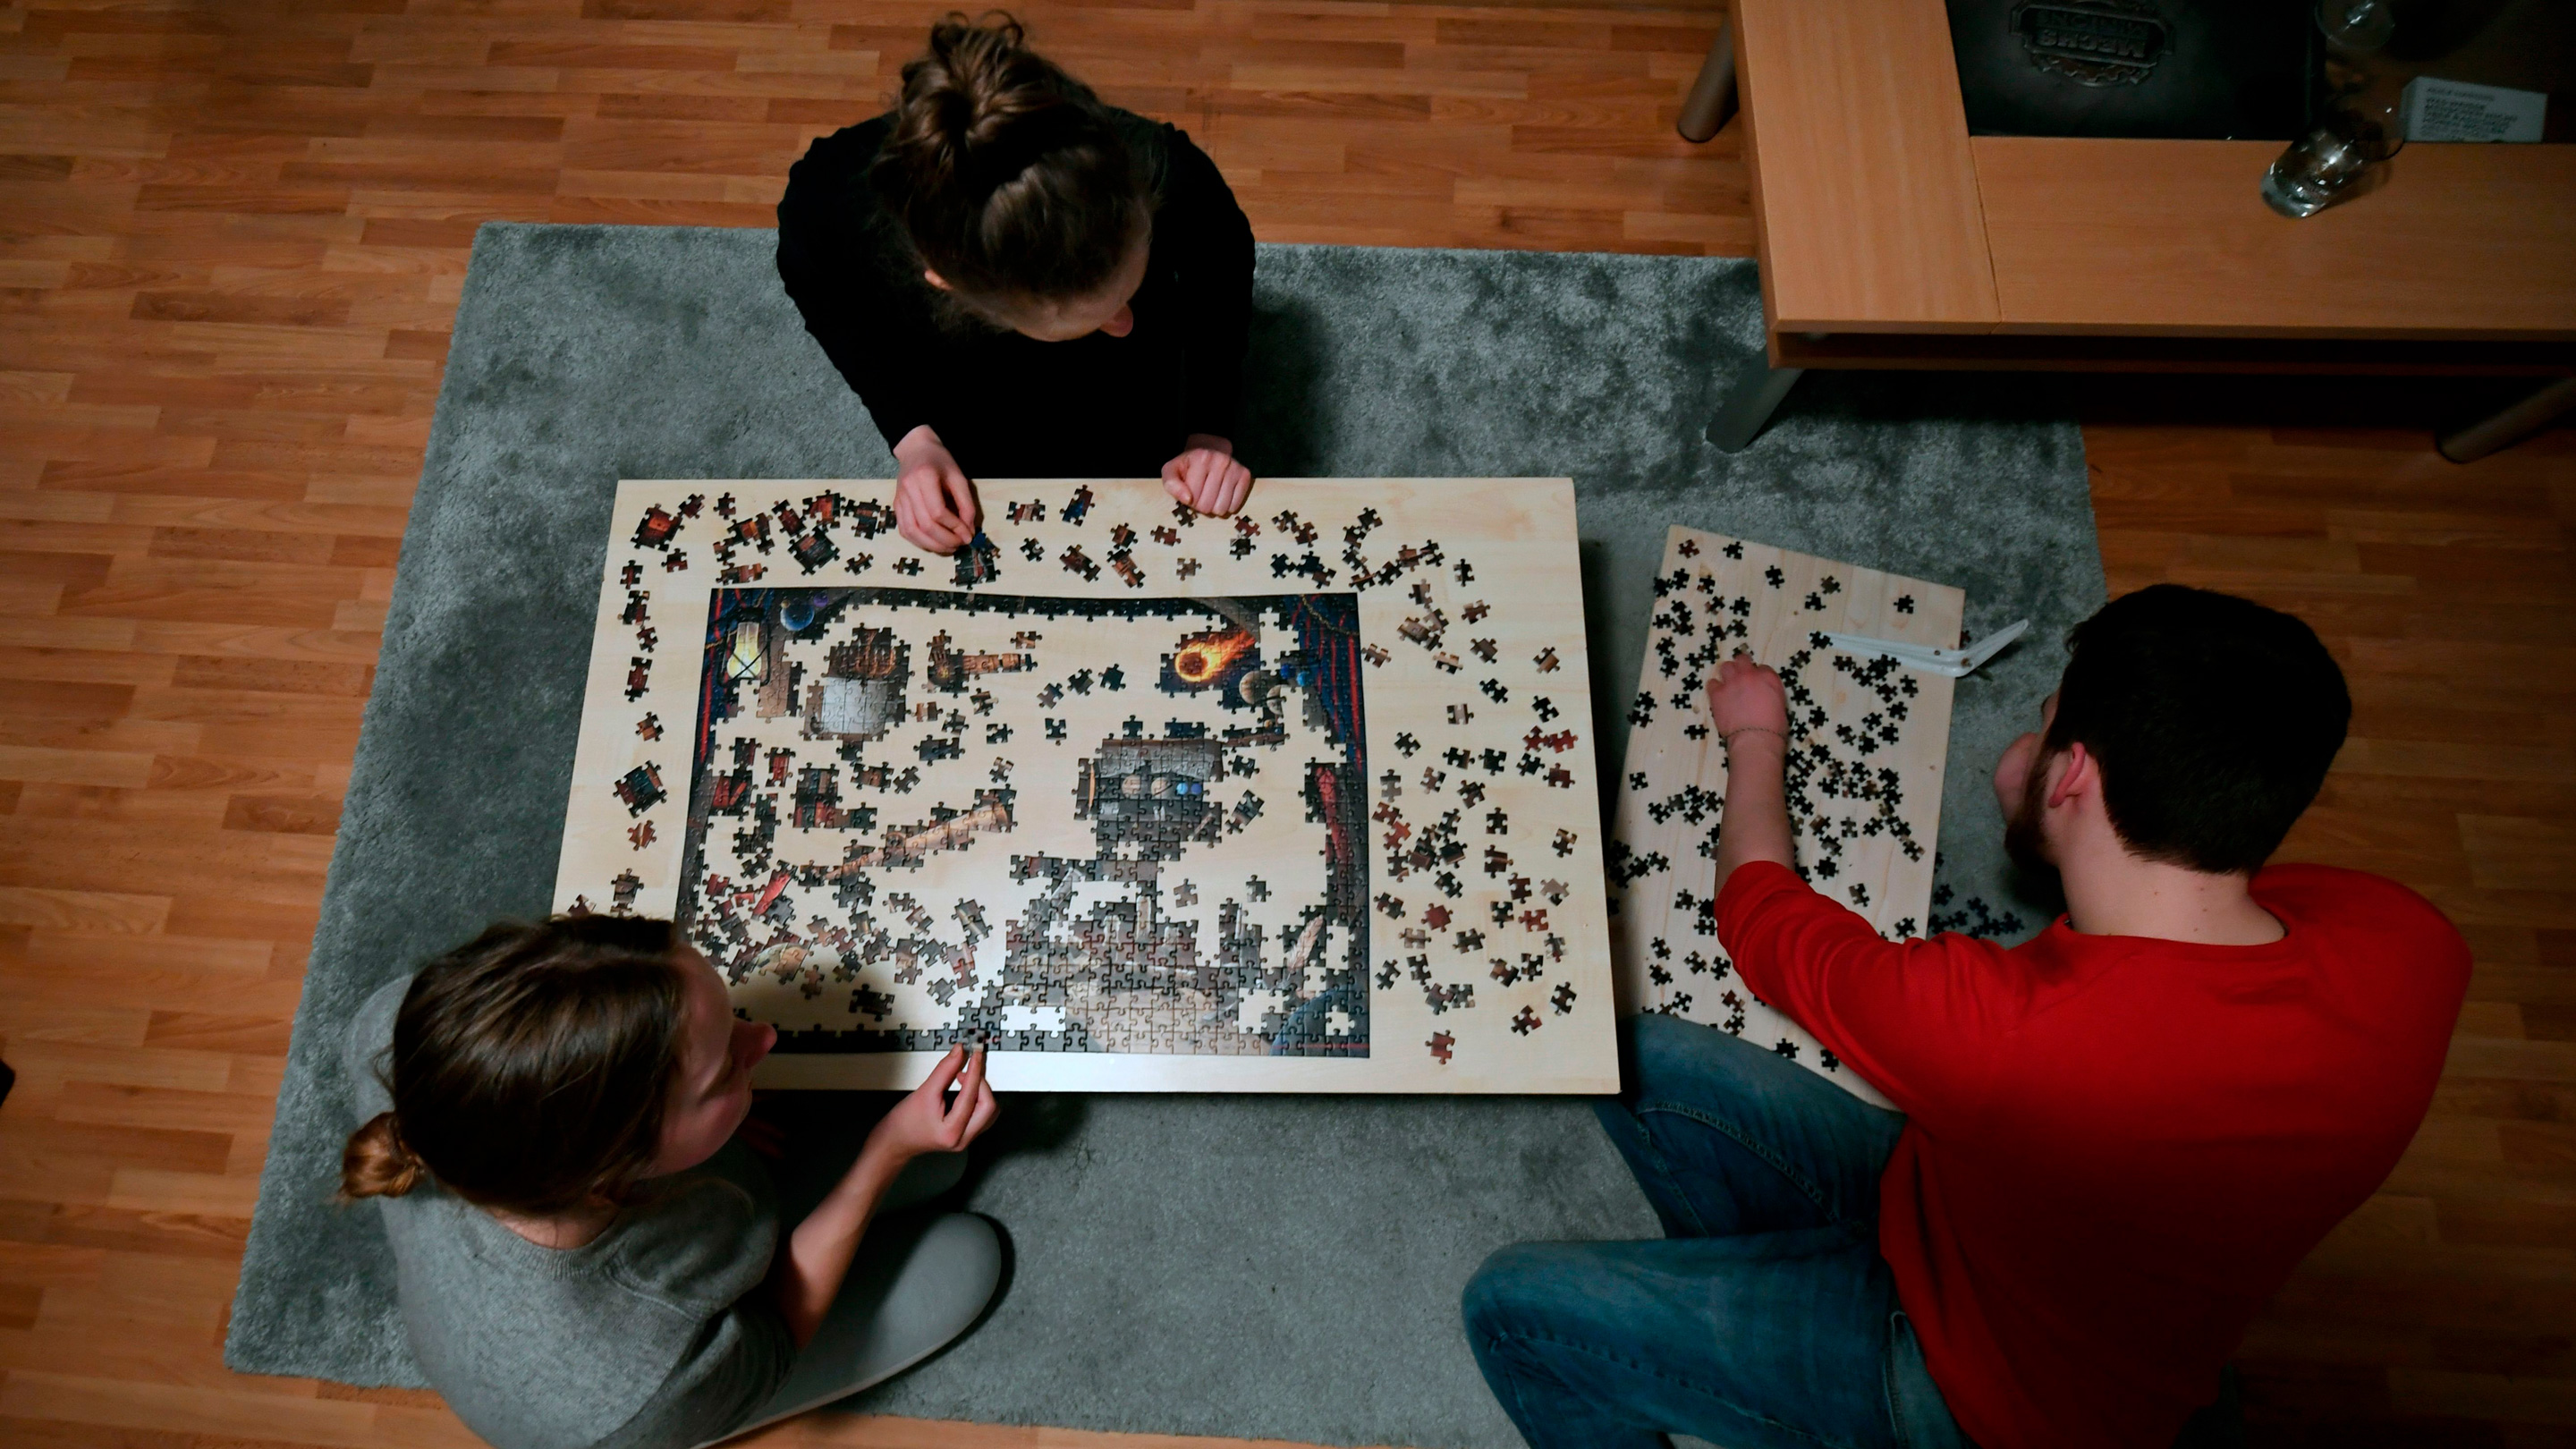 Jigsaw puzzles are a quarantine hit. This puzzle-maker hopes that continues  after the pandemic. - Marketplace